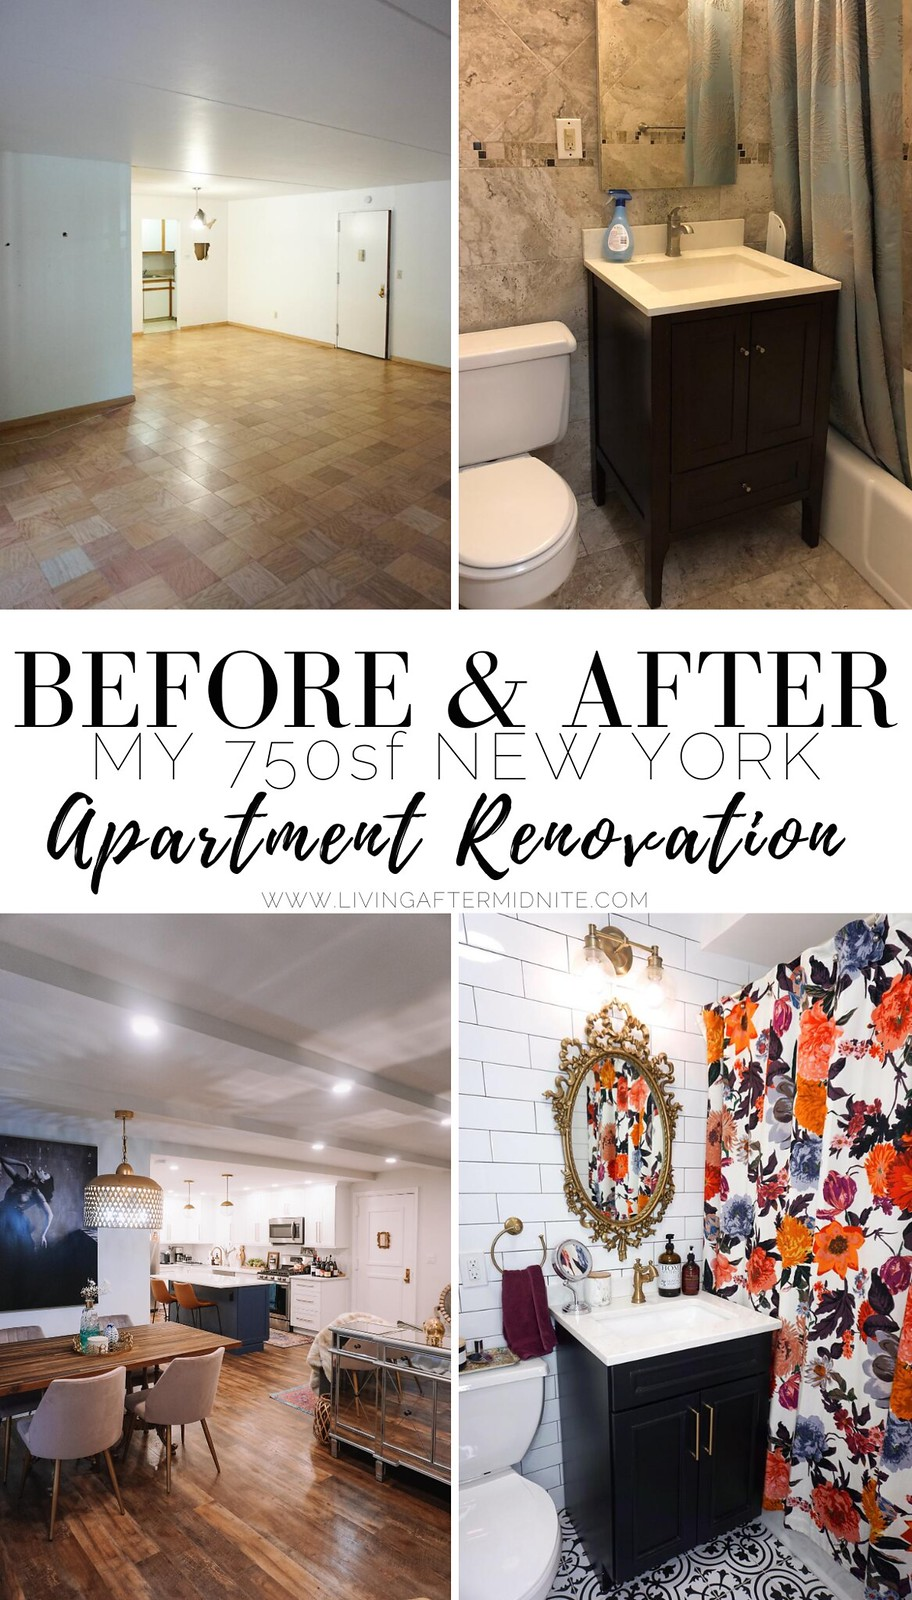 750 square foot New York Apartment Renovation | Eclectic Modern Decorating Style Home Decor Inspiration | Before After Home Reno Photos